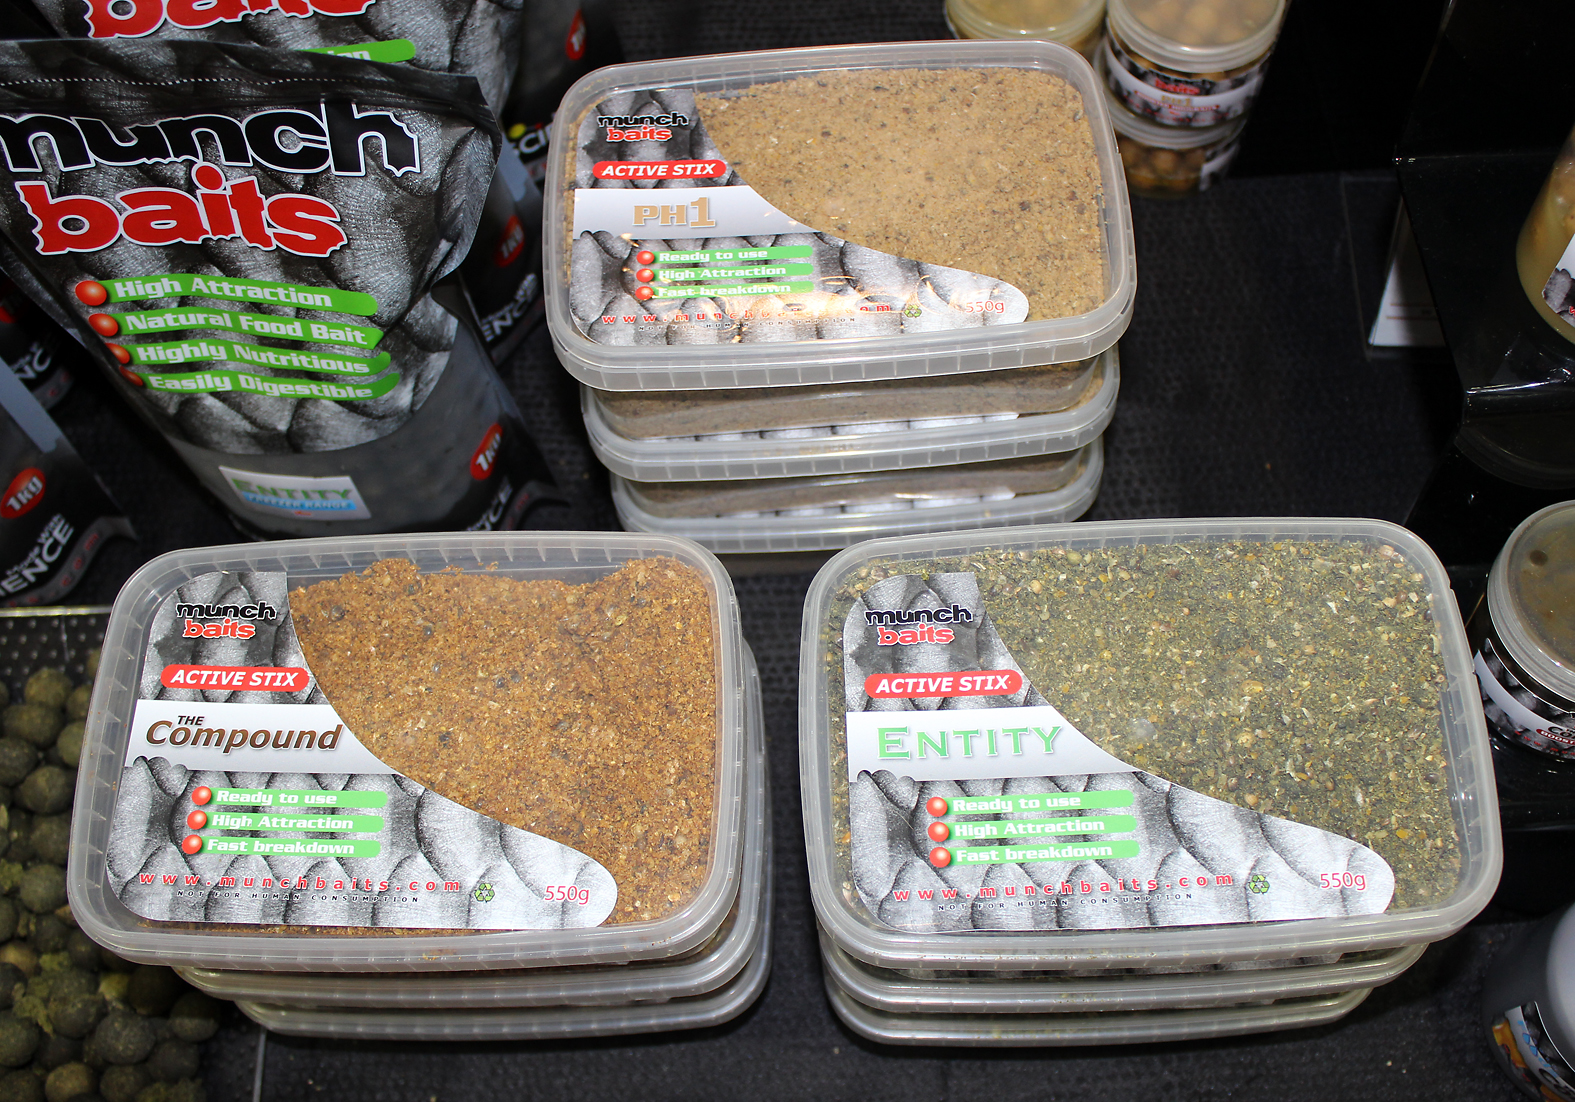 Covering all bases, Munch Baits latest stick mix range